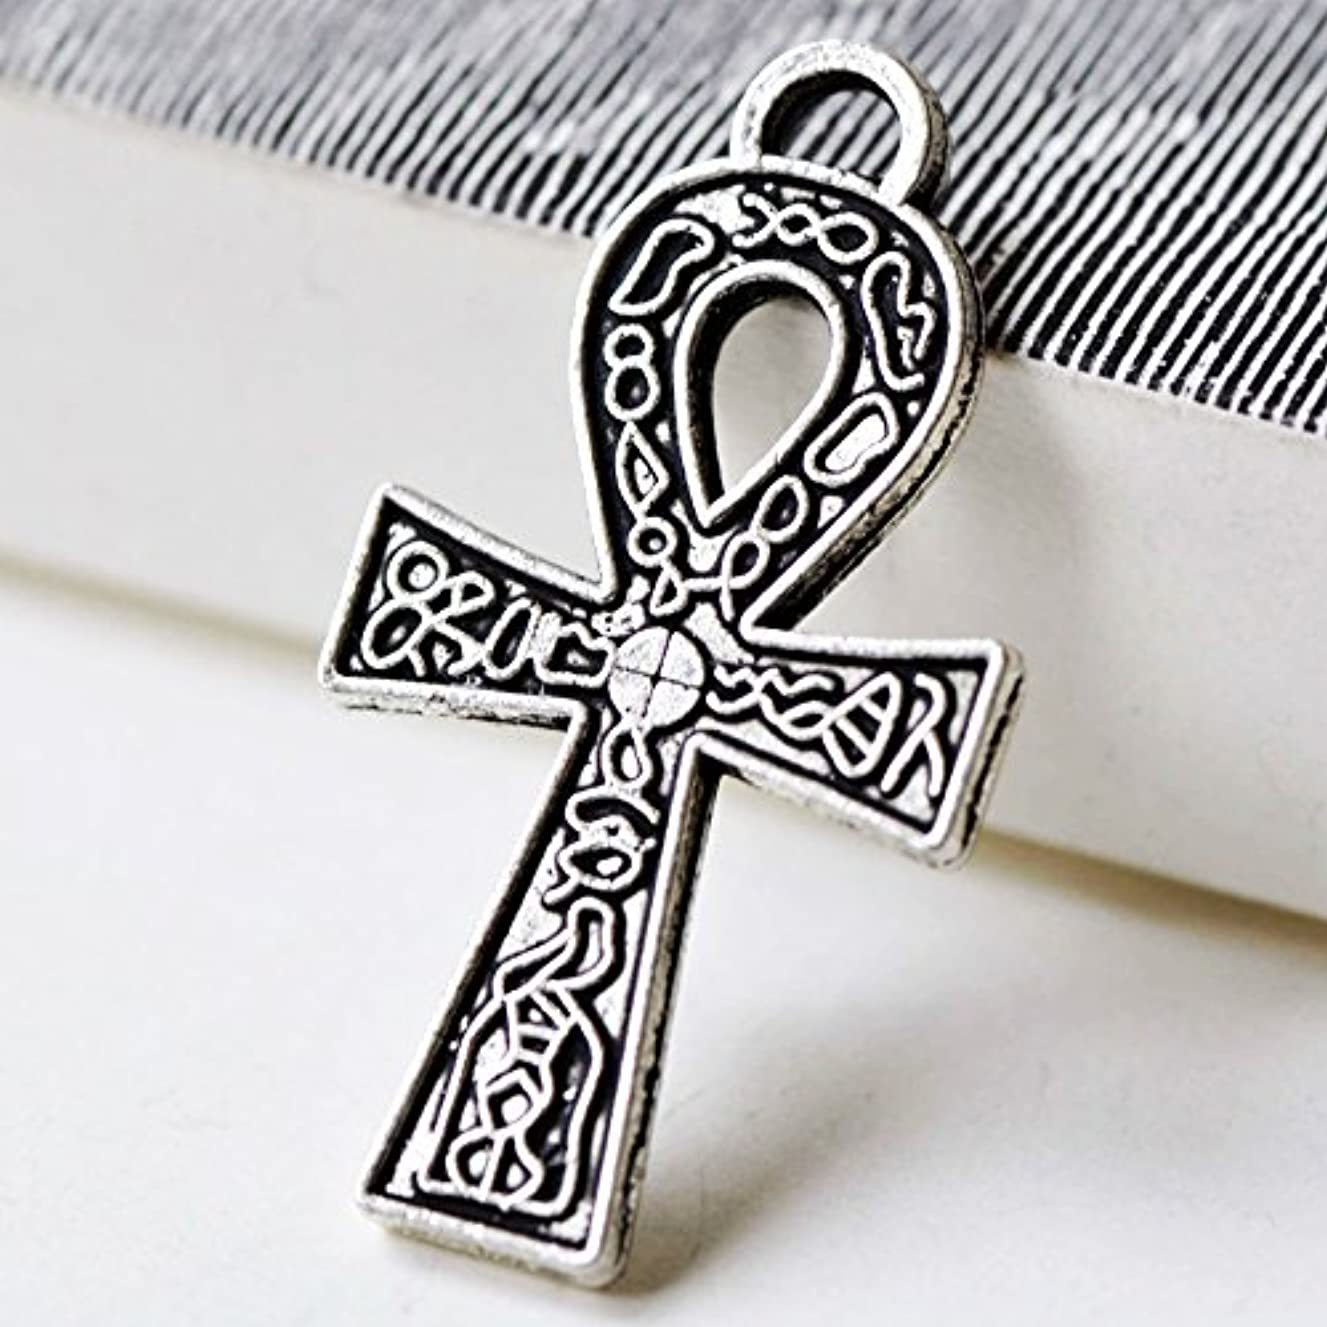 Ankh Charms 5 Antique Silver Ankh Charms Egyptian 38x21mm Symbol Charm Craft Supplies (NS695)